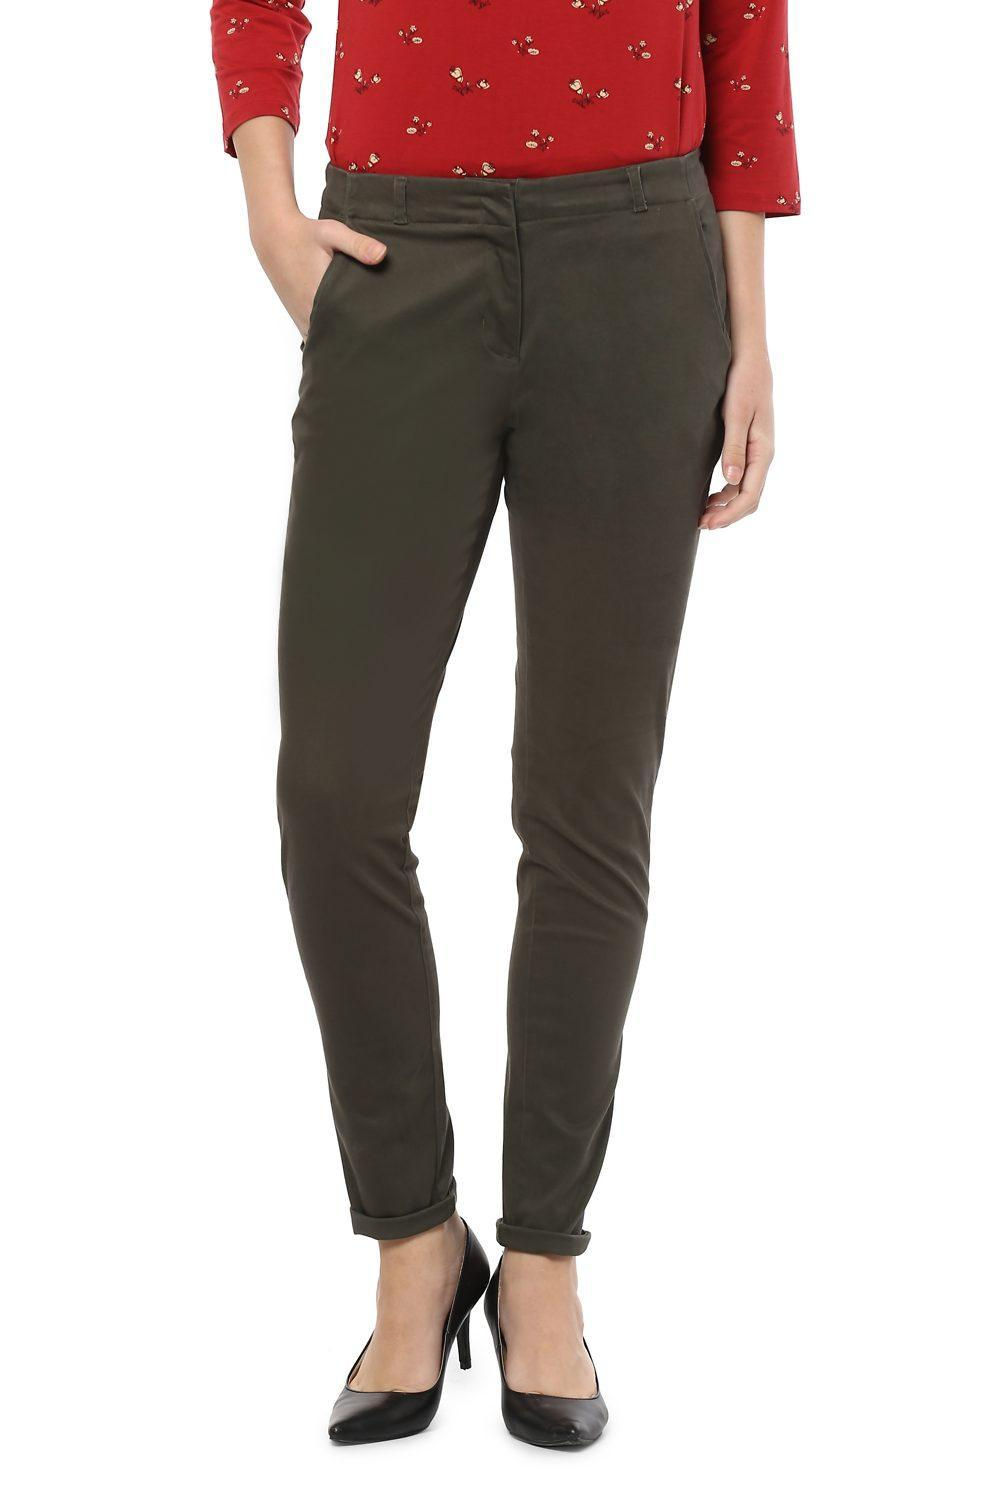 f91db40f81e1dd Solly Trousers & Leggings, Allen Solly Olive Trousers for Women at  Allensolly.com